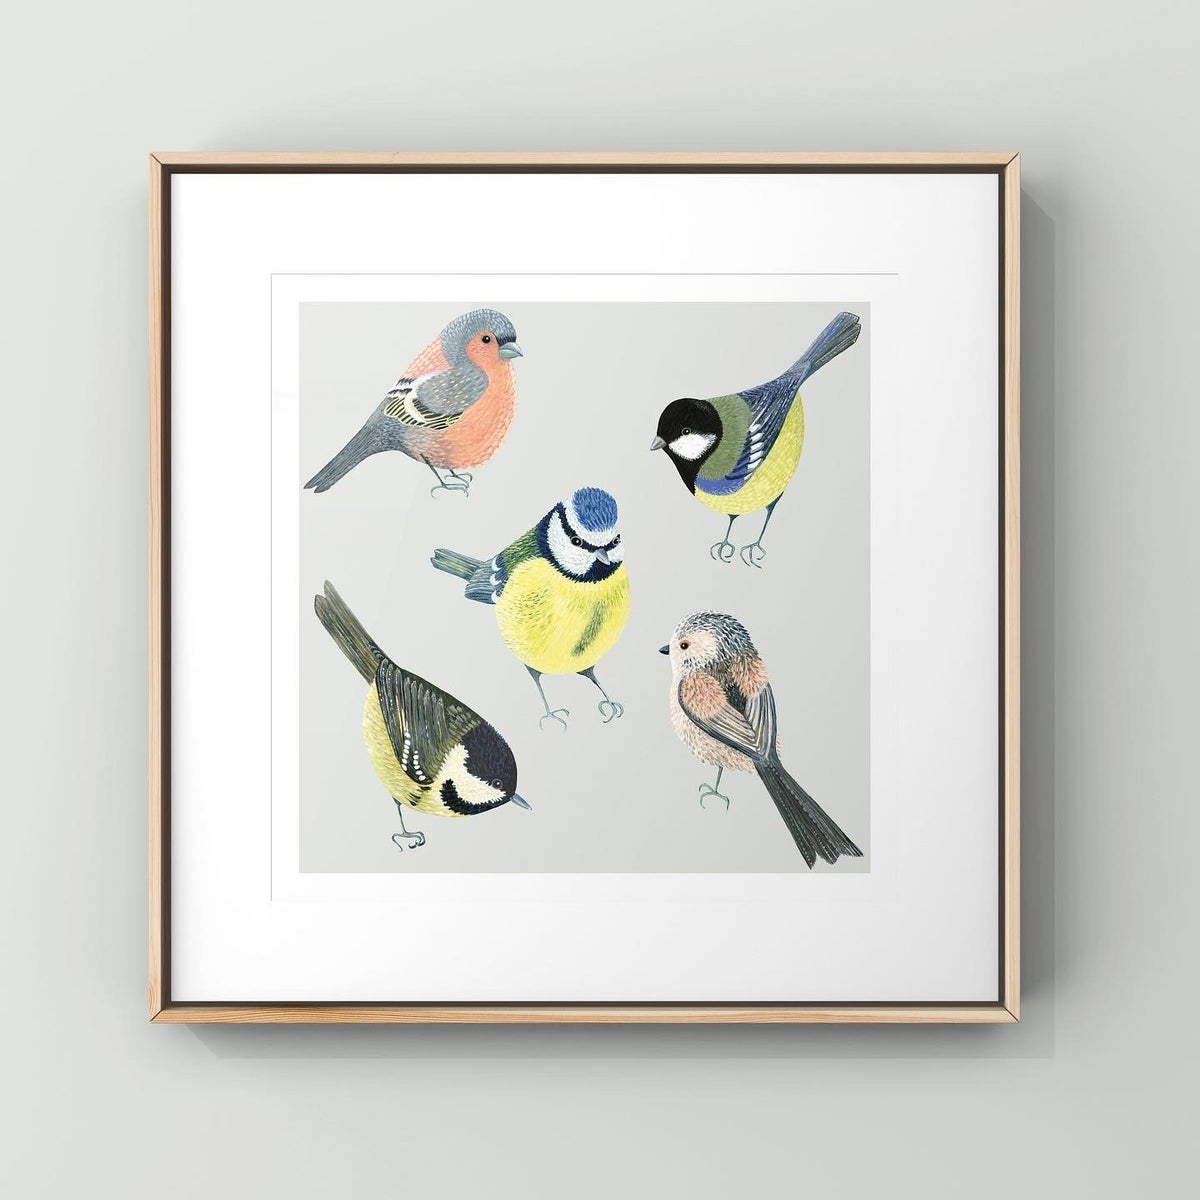 The Garden Birds Limited Edition Print